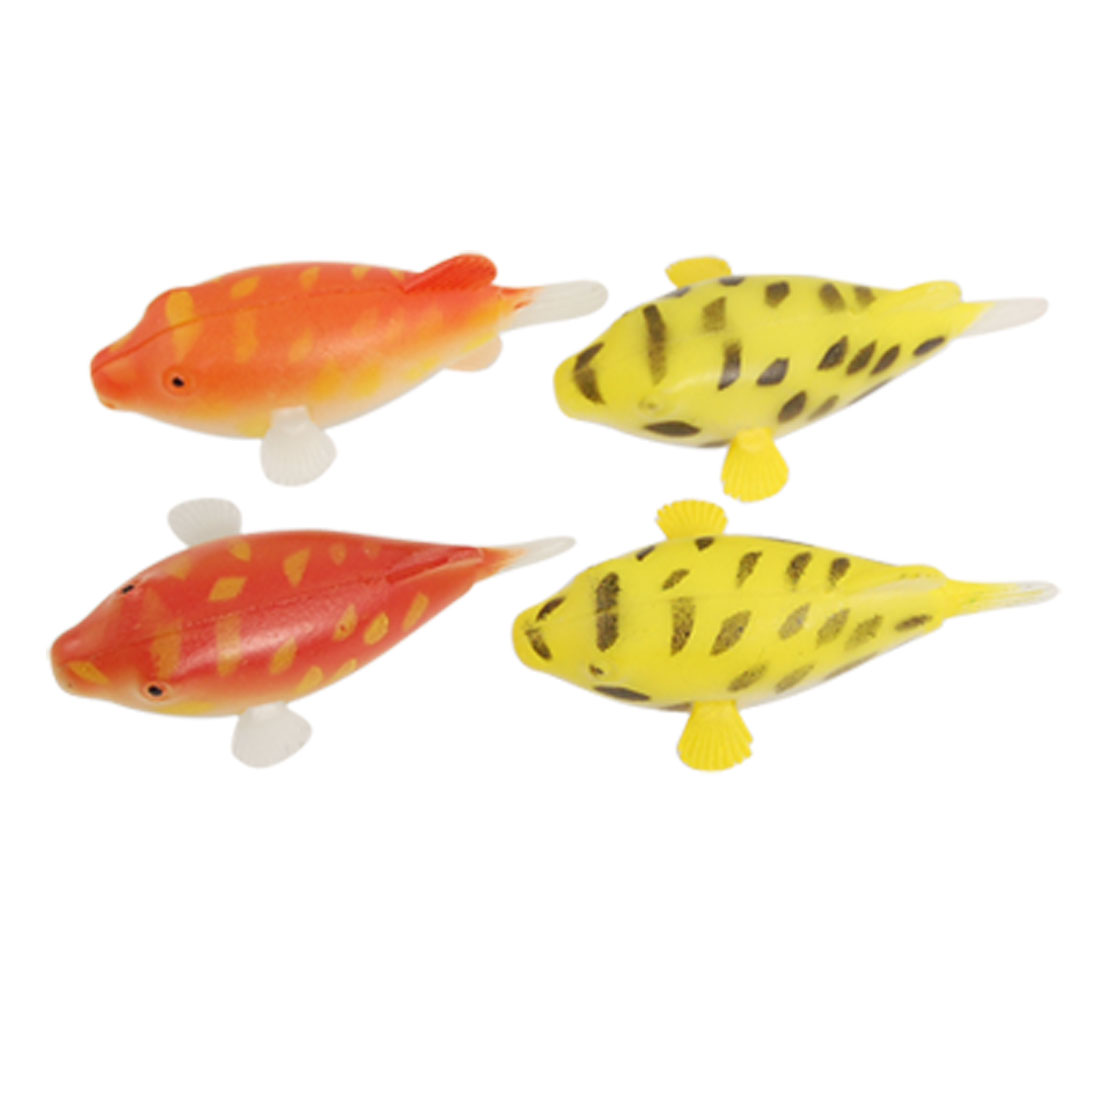 Aquarium Flexible Fins Speckled Fish Ornament 4 Pcs